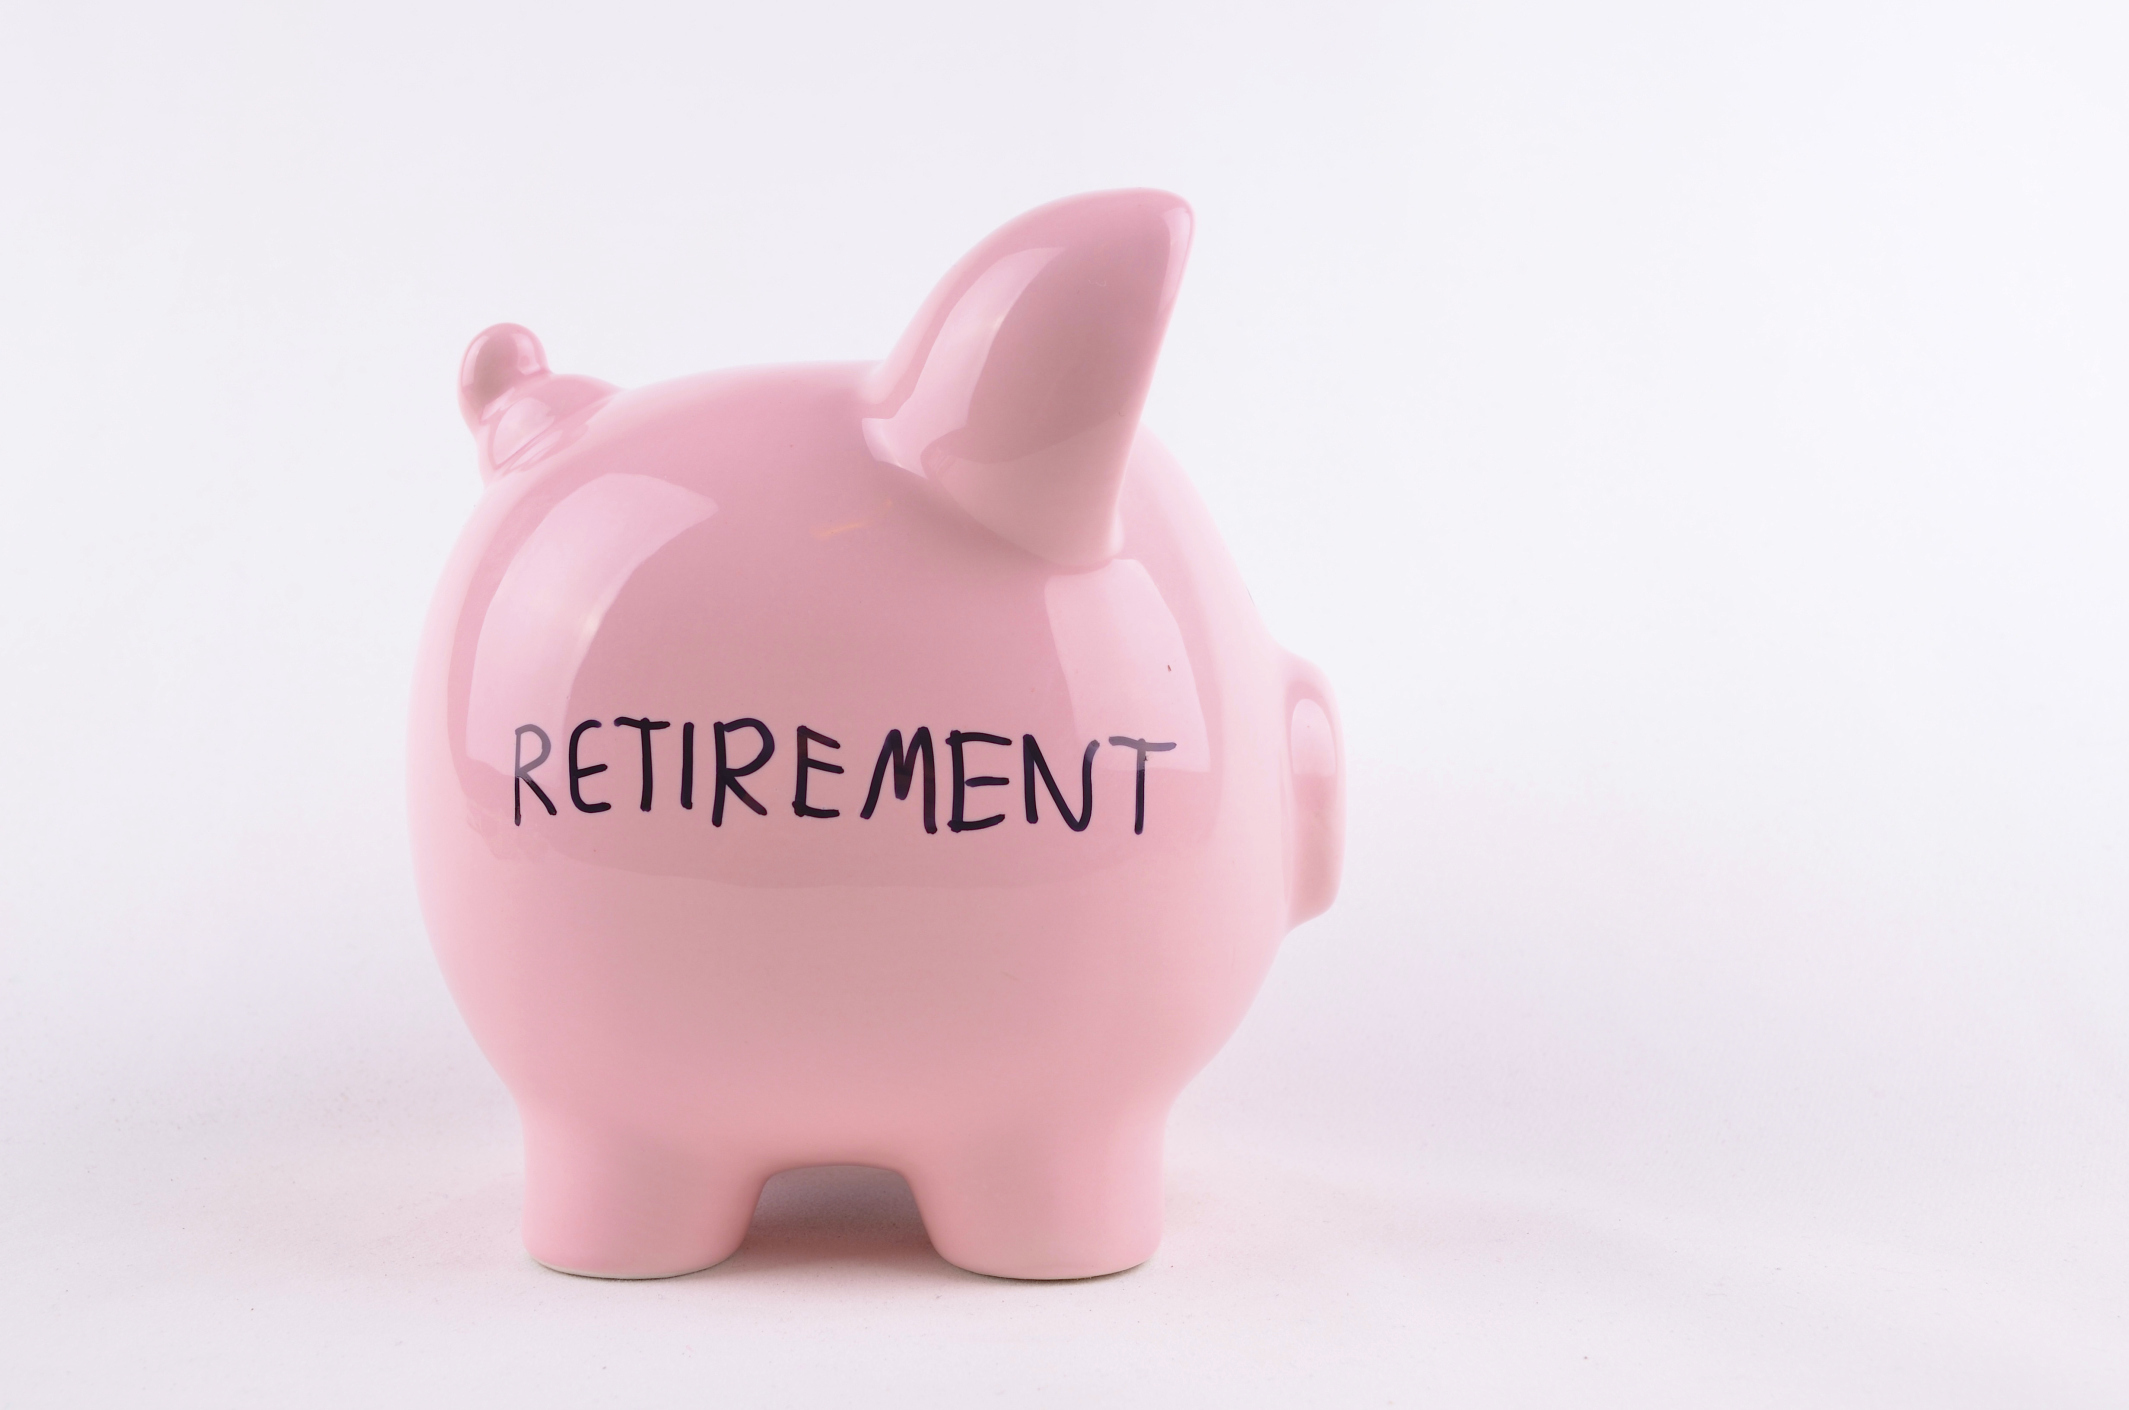 Retirement leaves many people short changed. But can it also leave many feeling worthless?